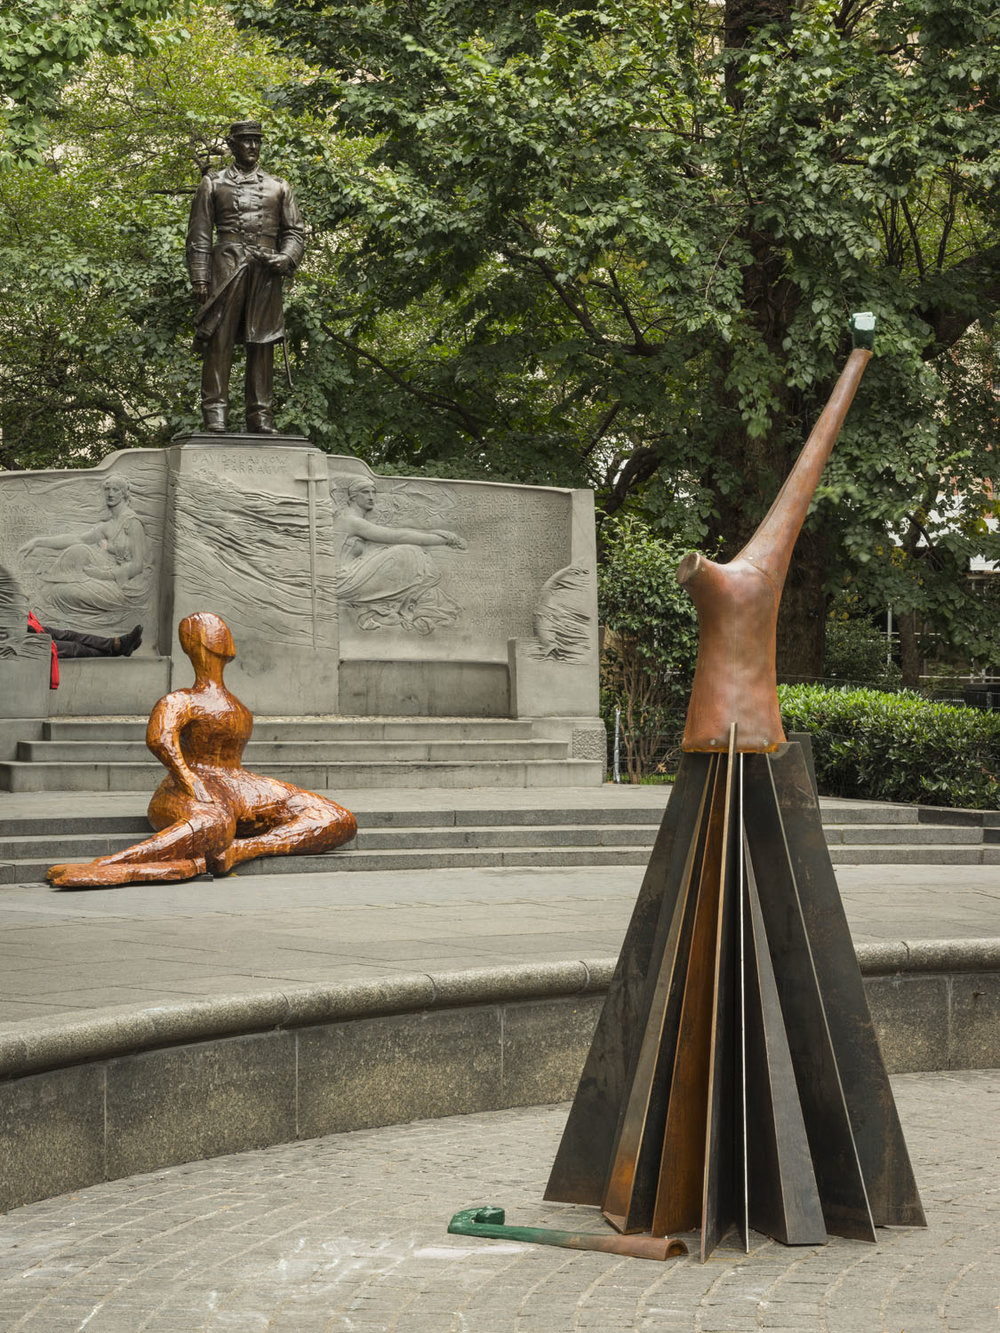 Full Steam Ahead , public installation at Madison Square Park, New York, NY, 2018-19.  Photography by Kris Graves. Courtesy the artist and Pace Gallery.